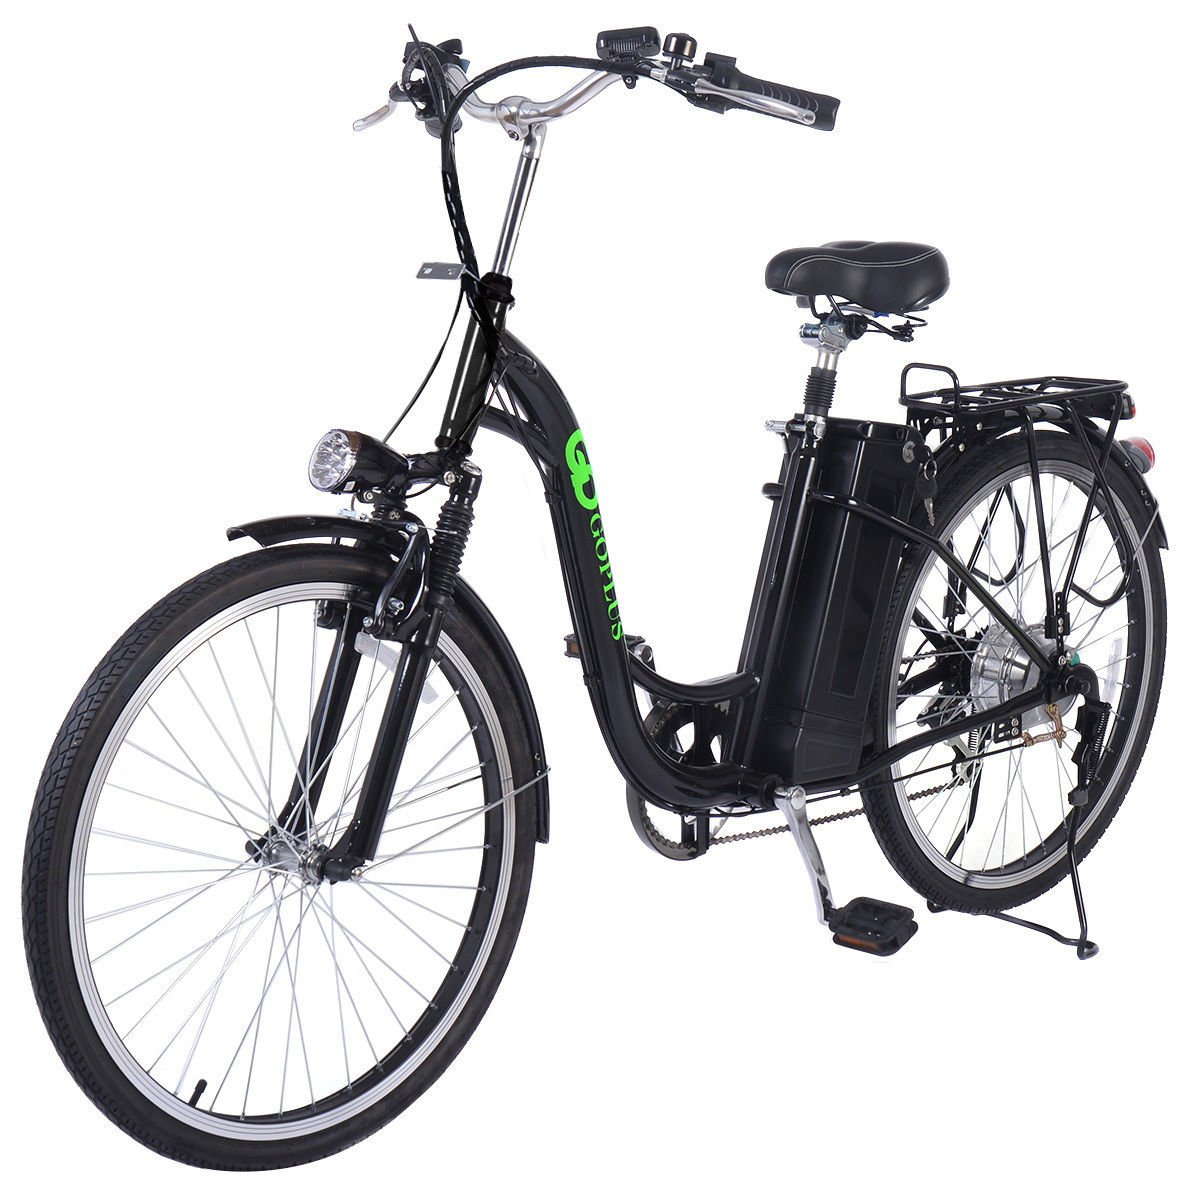 Classic Bicycle Electric Bike Black 250W 26 Inch Lithium Battery